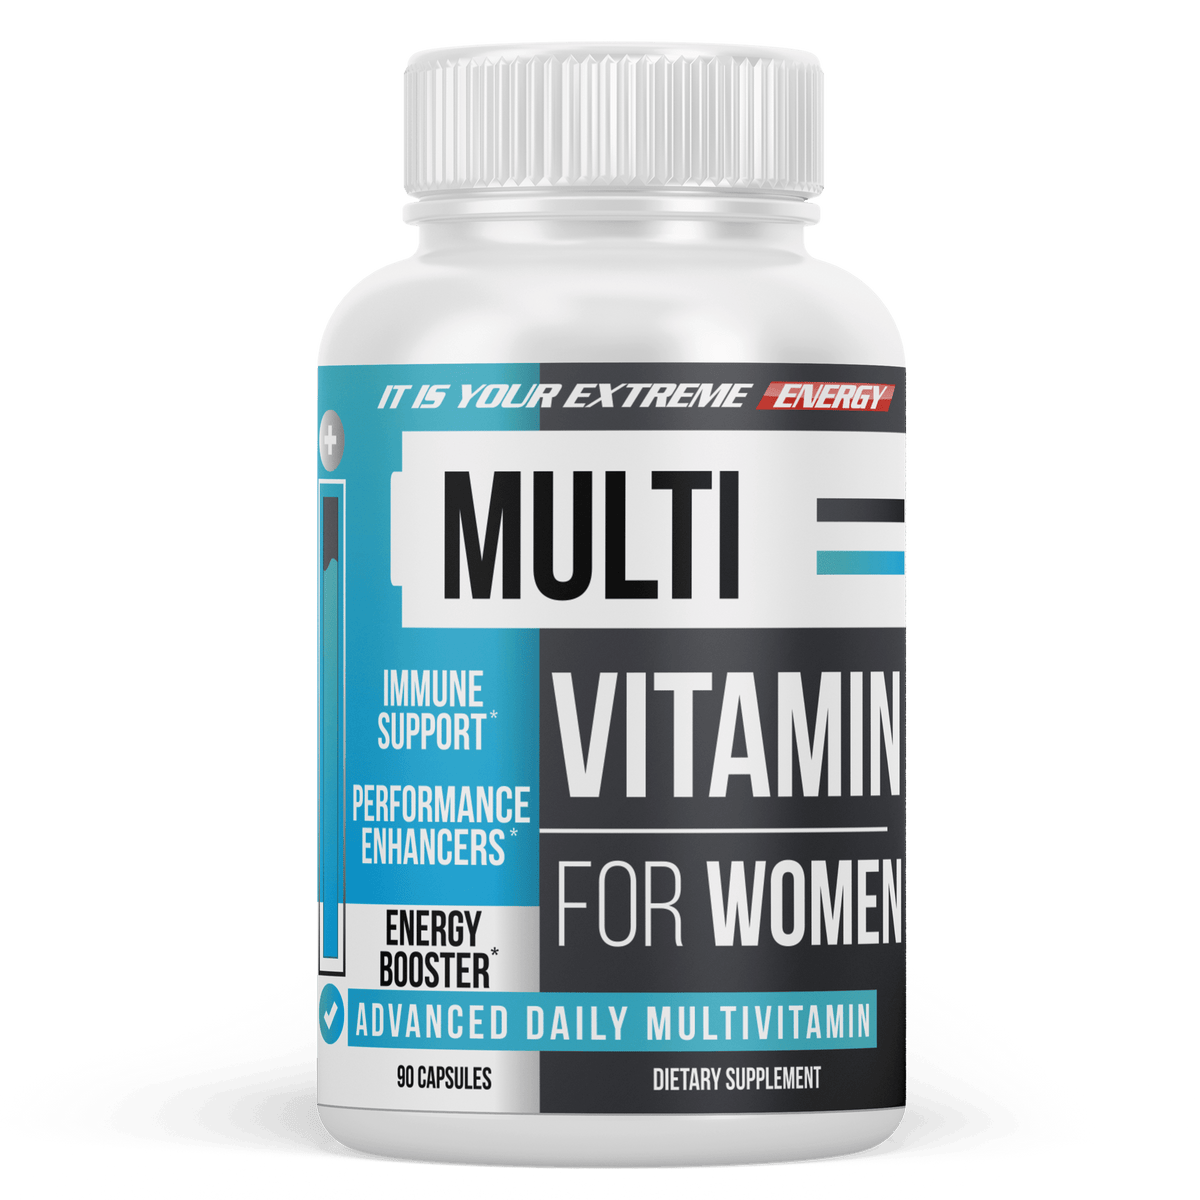 Womens Multivitamin - Daily Multimineral Multivitamin Supplement